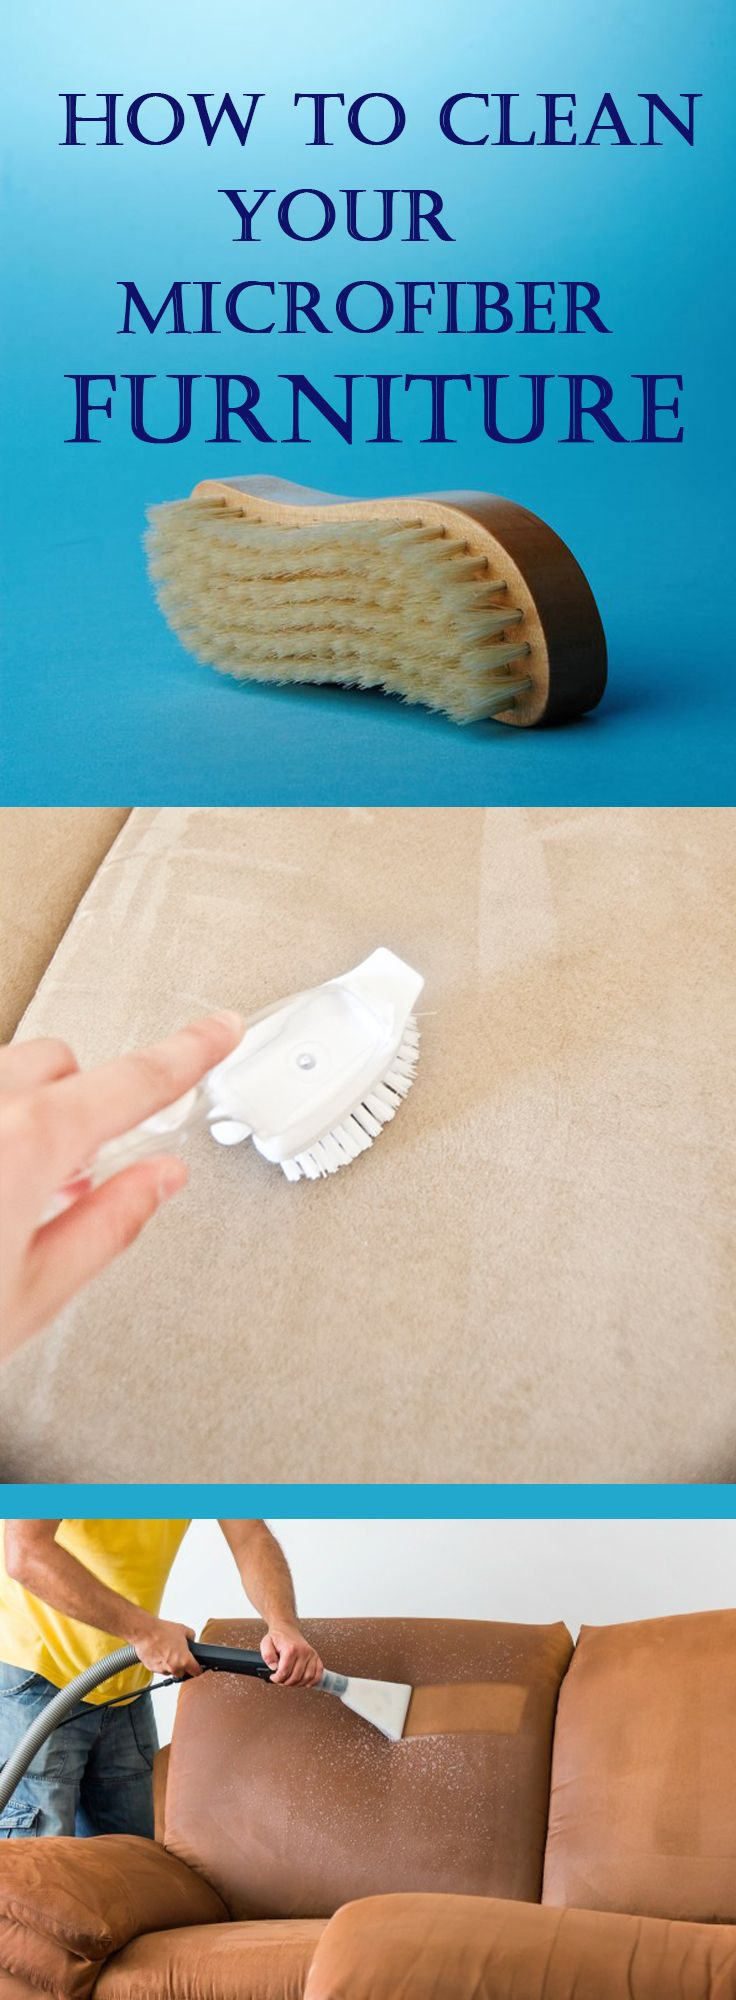 How to Clean Your Microfiber Furniture